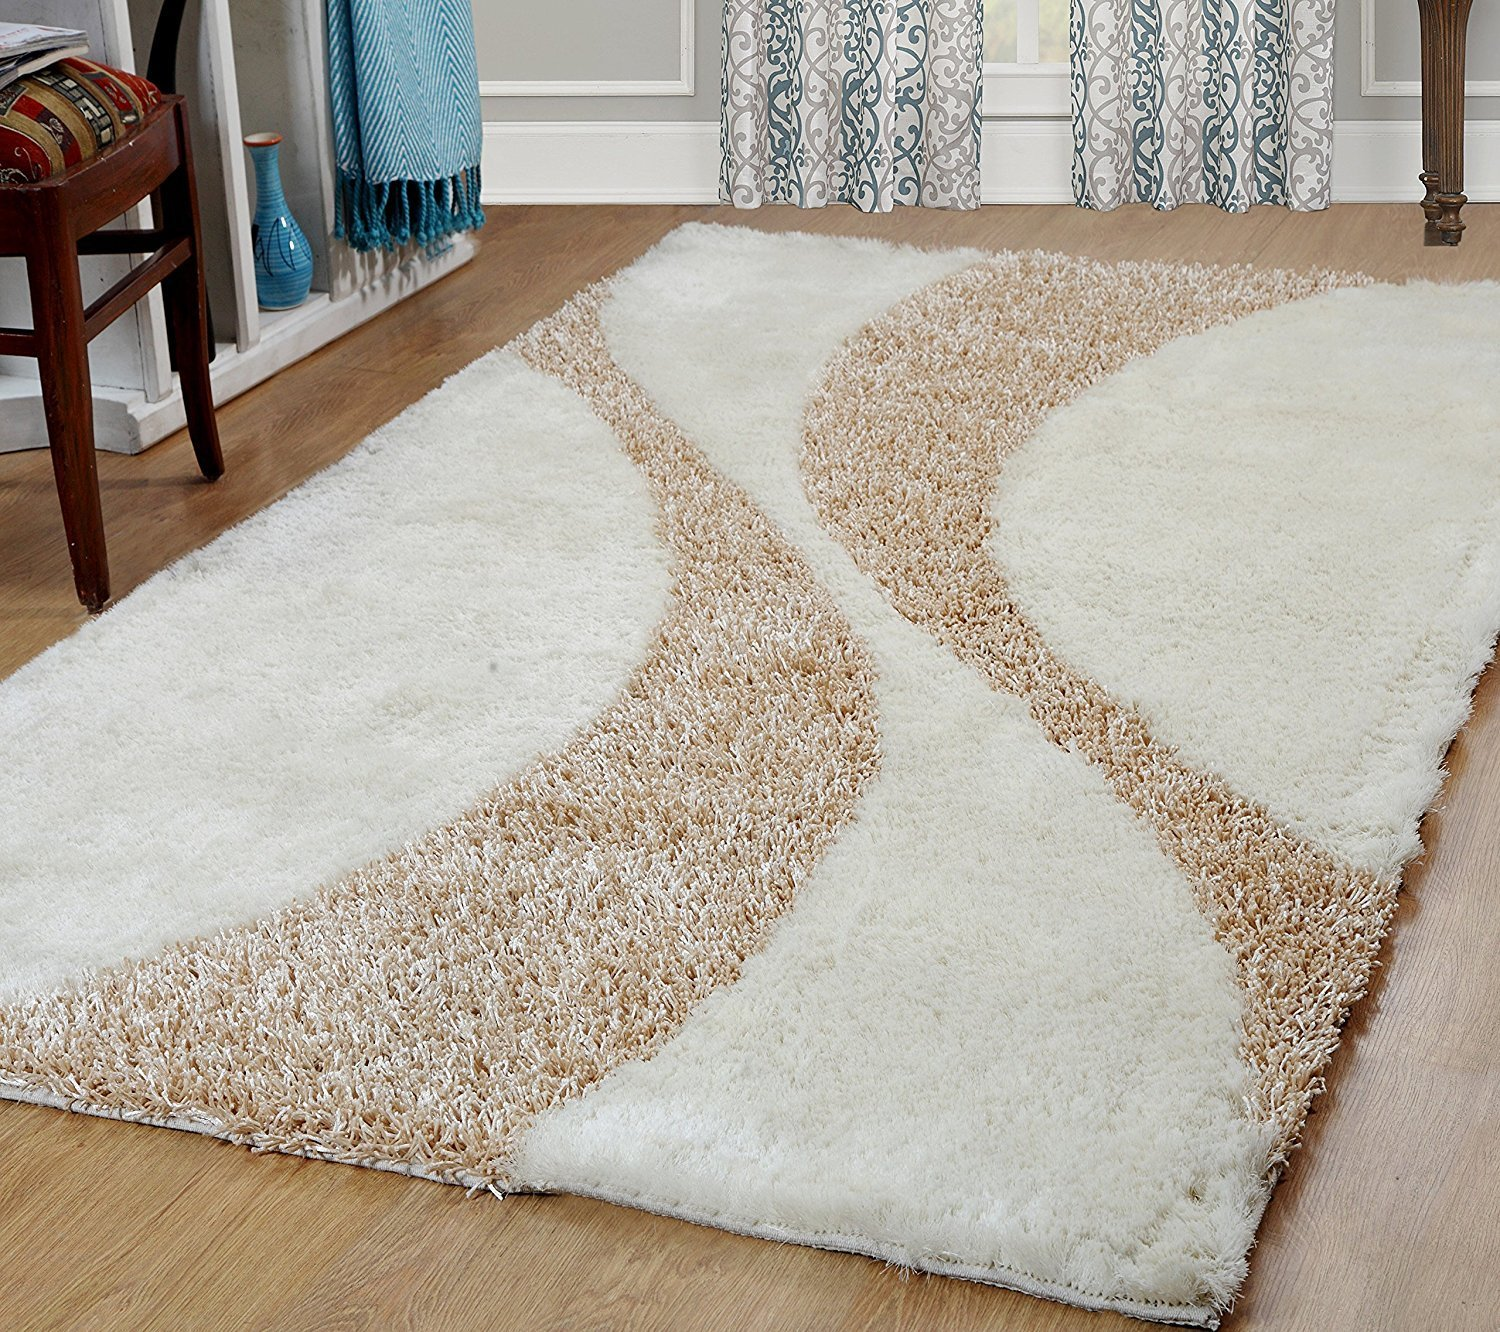 Furnish my Place Hand Woven Soft and Plush Modern Silky Shag Area Shag for Indoor Home Bedroom Living/Dining Room, Aqua Two Tone 815 Furnishmyplace 815 aqua two tone 5x8